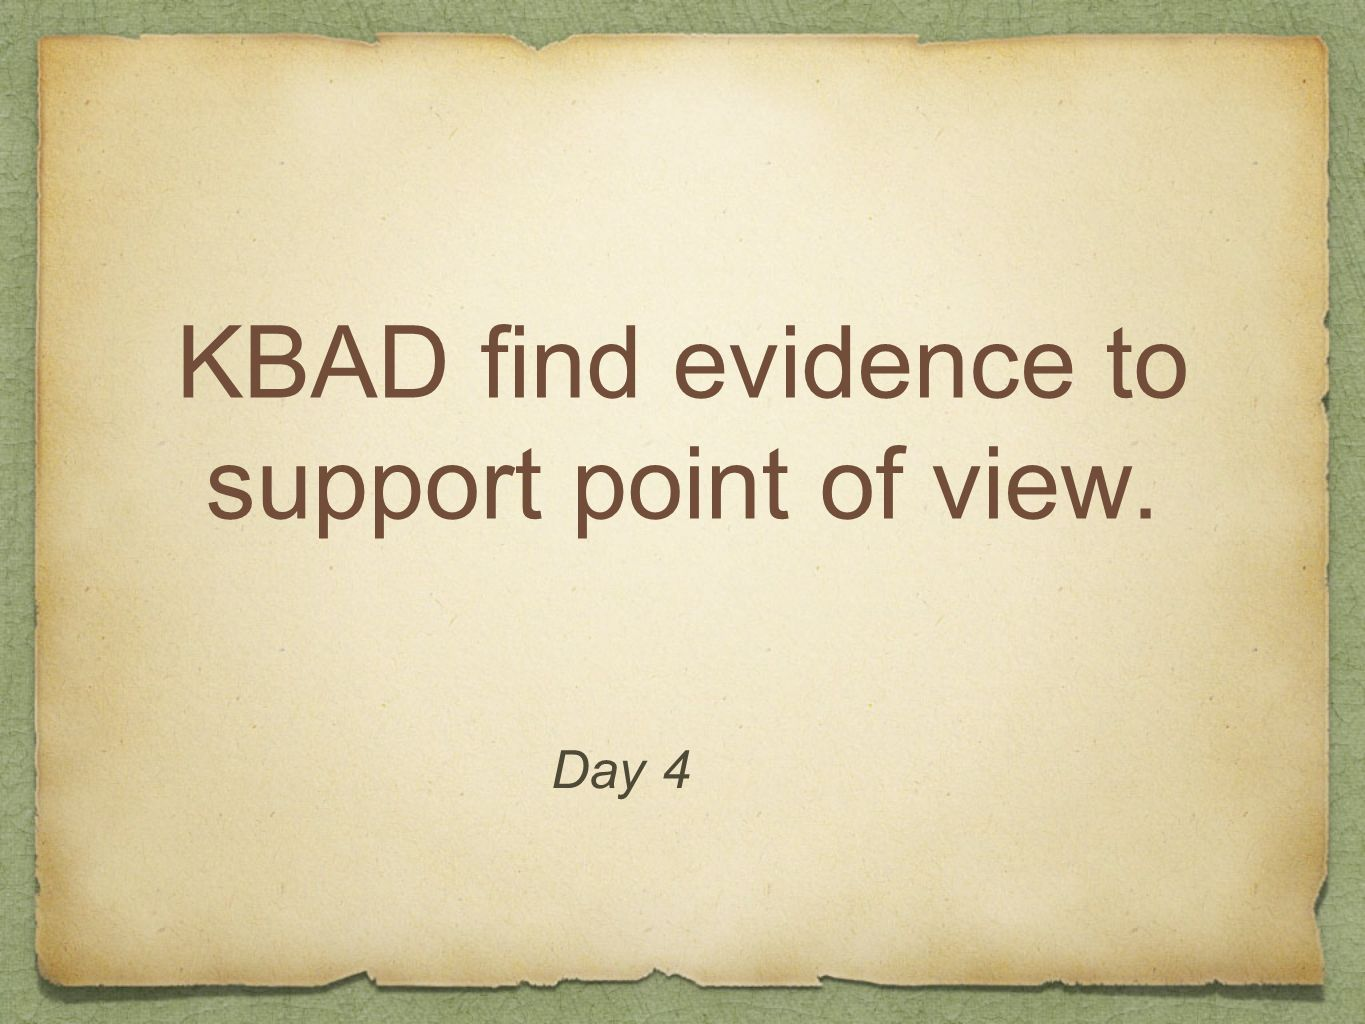 KBAD find evidence to support point of view.